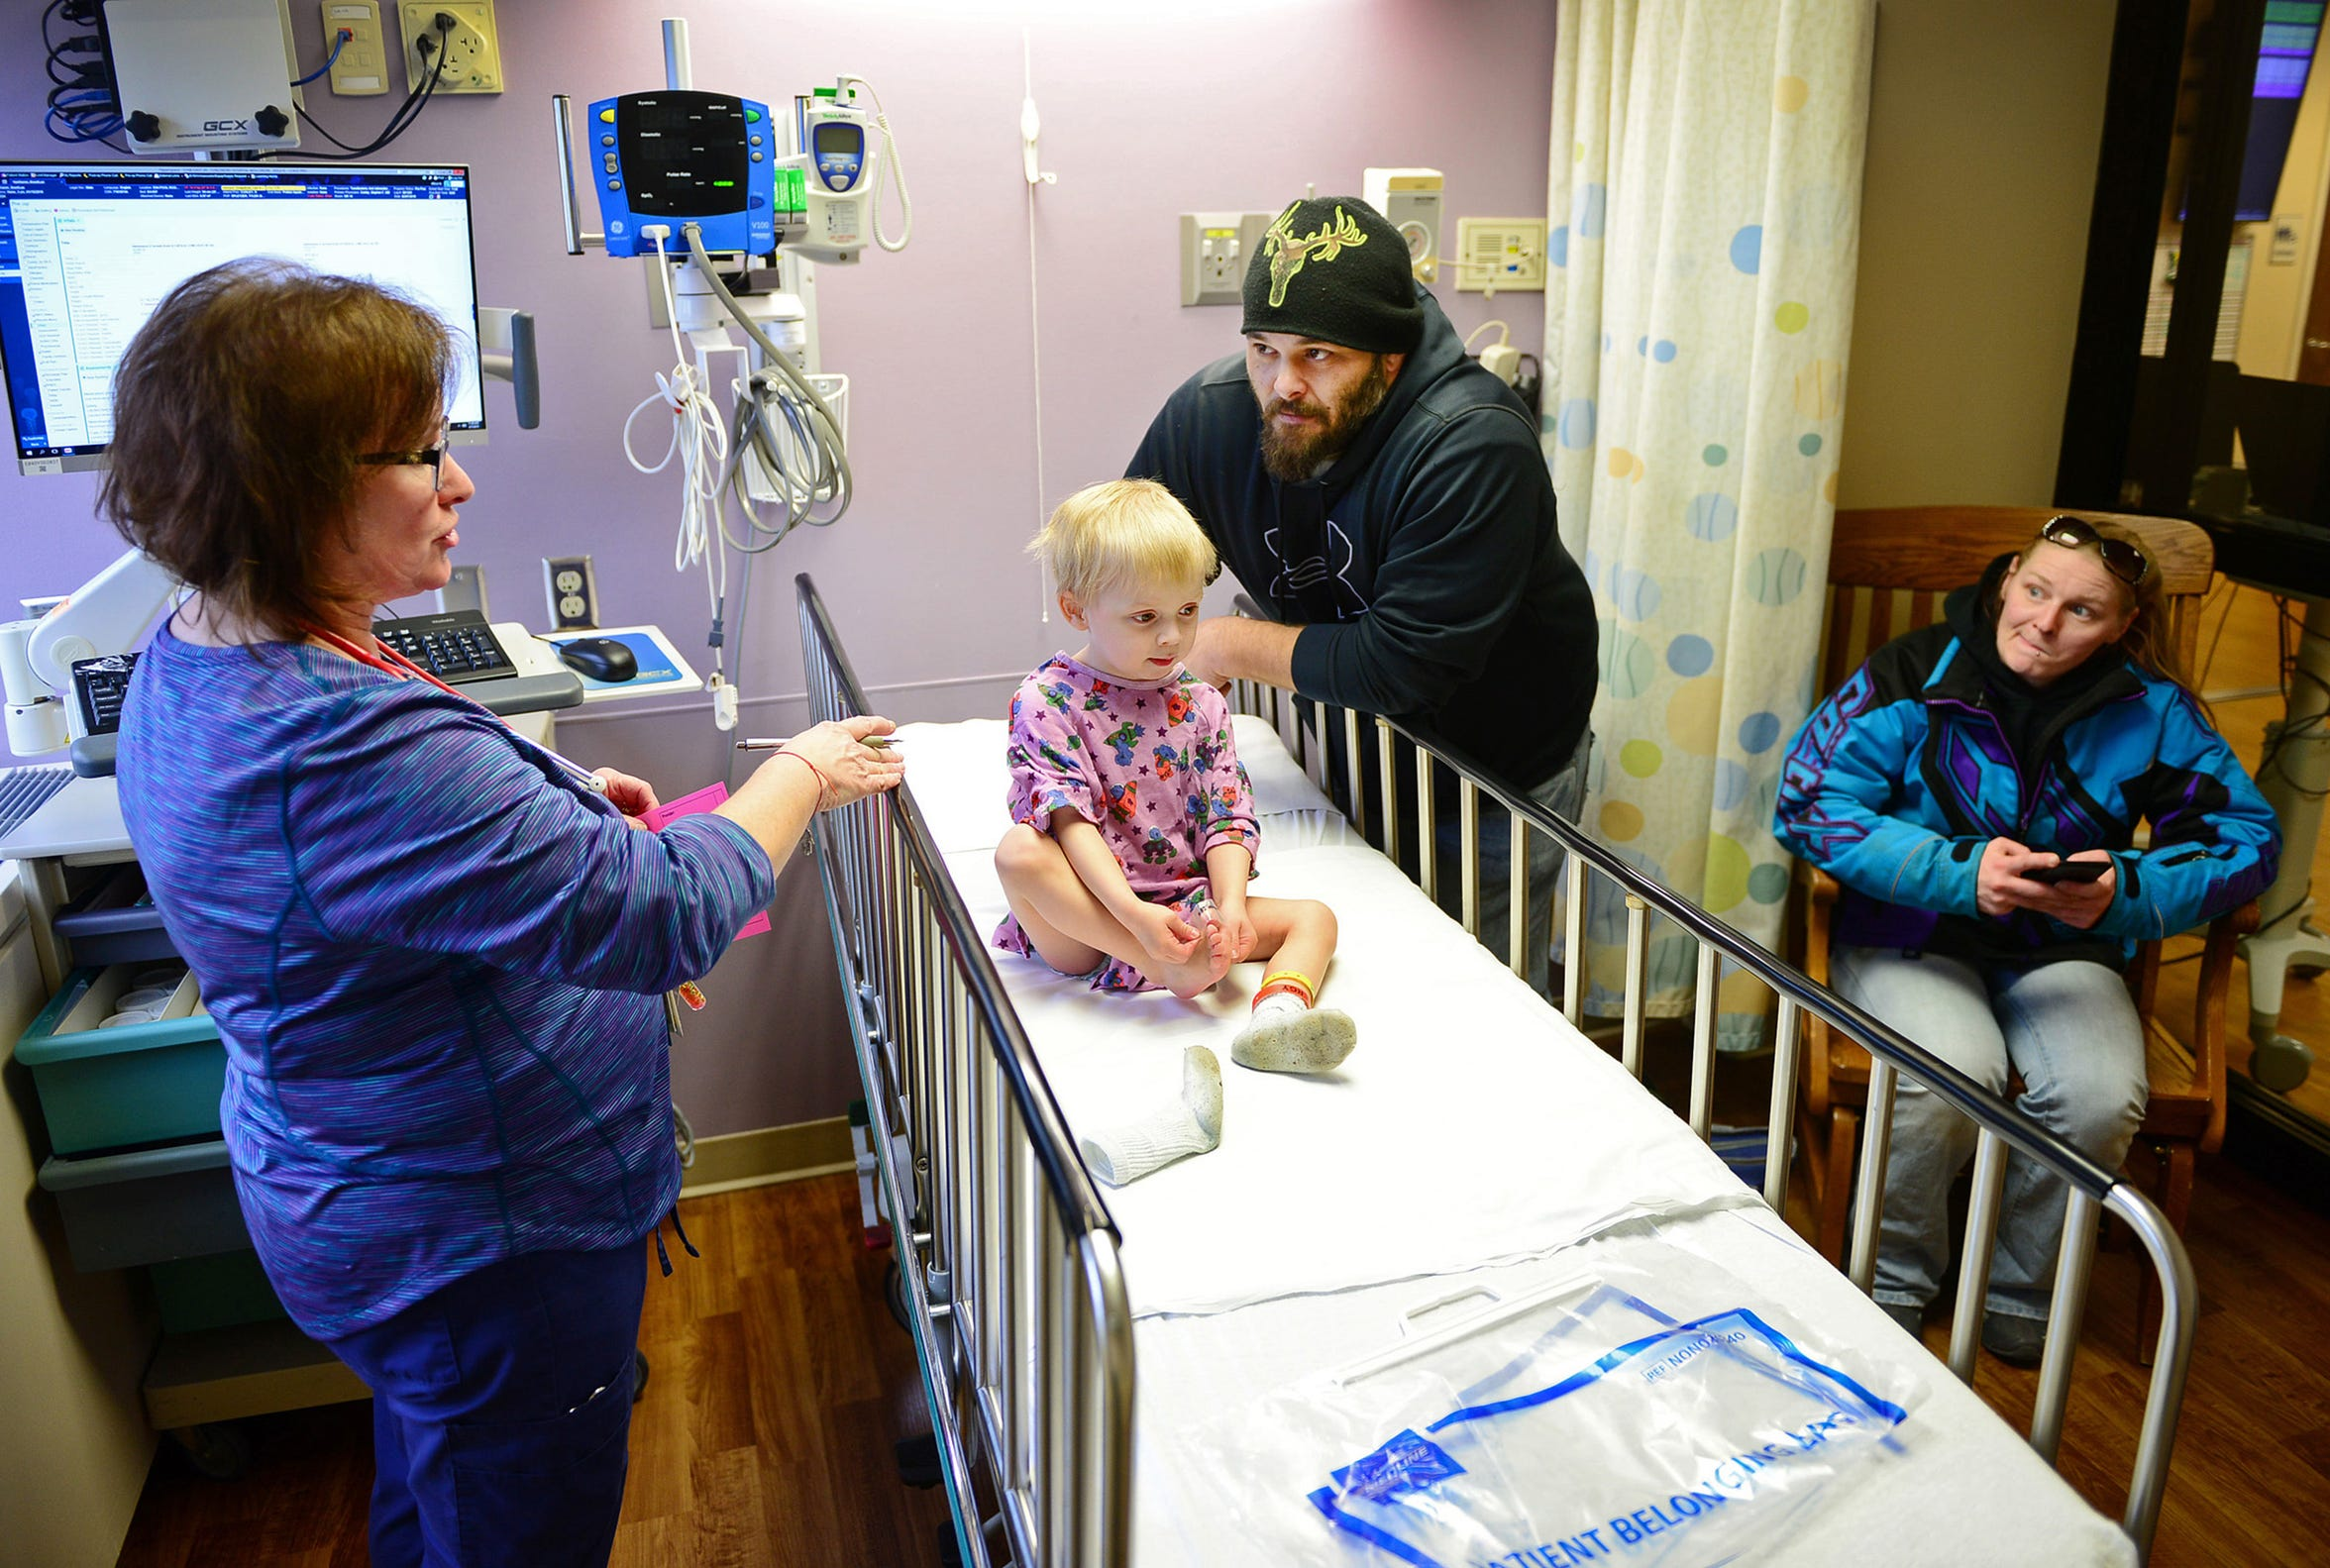 Nurse Kelli Kaminski checks in on BrentLee Van Haren during a follow-up care visit to Children's Hospital of Wisconsin on Feb. 7. His father, Robert, is beside him. Seated is BrentLee's mom, Chelsey Meverden.